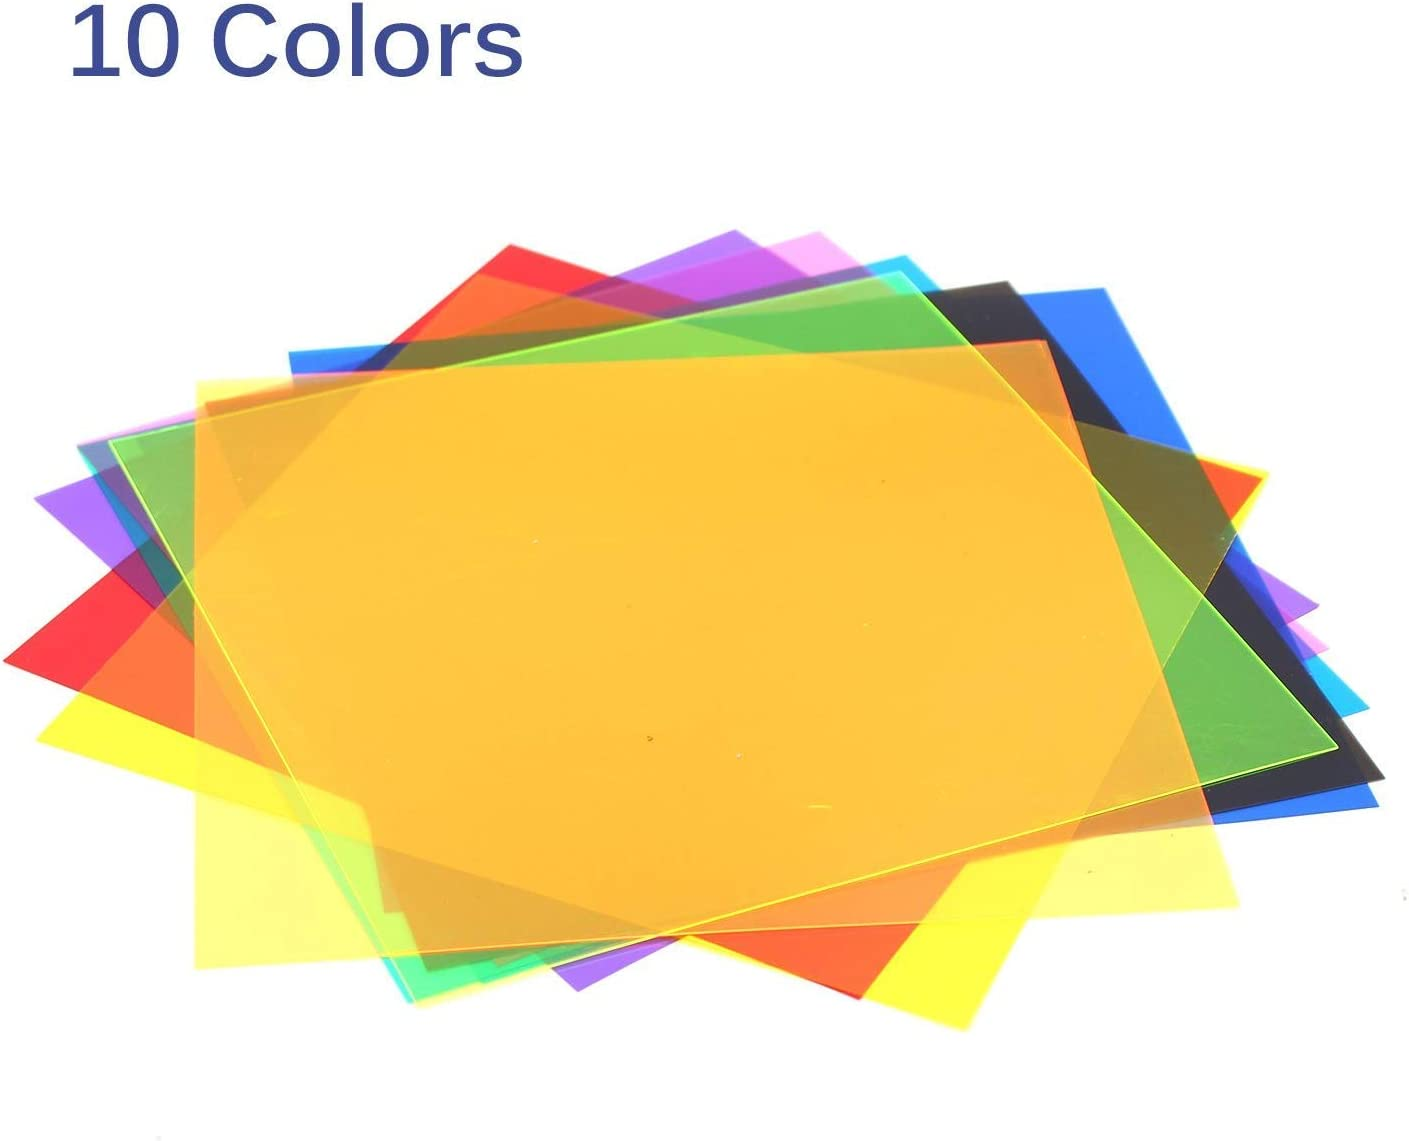 Red 10 Pack Gel Filter Transparency Color Film Plastic Sheets Colored Overlays Correction Gels Light Filter Flash Lighting Holiday Decorations,11.7 by 8.3 Inches